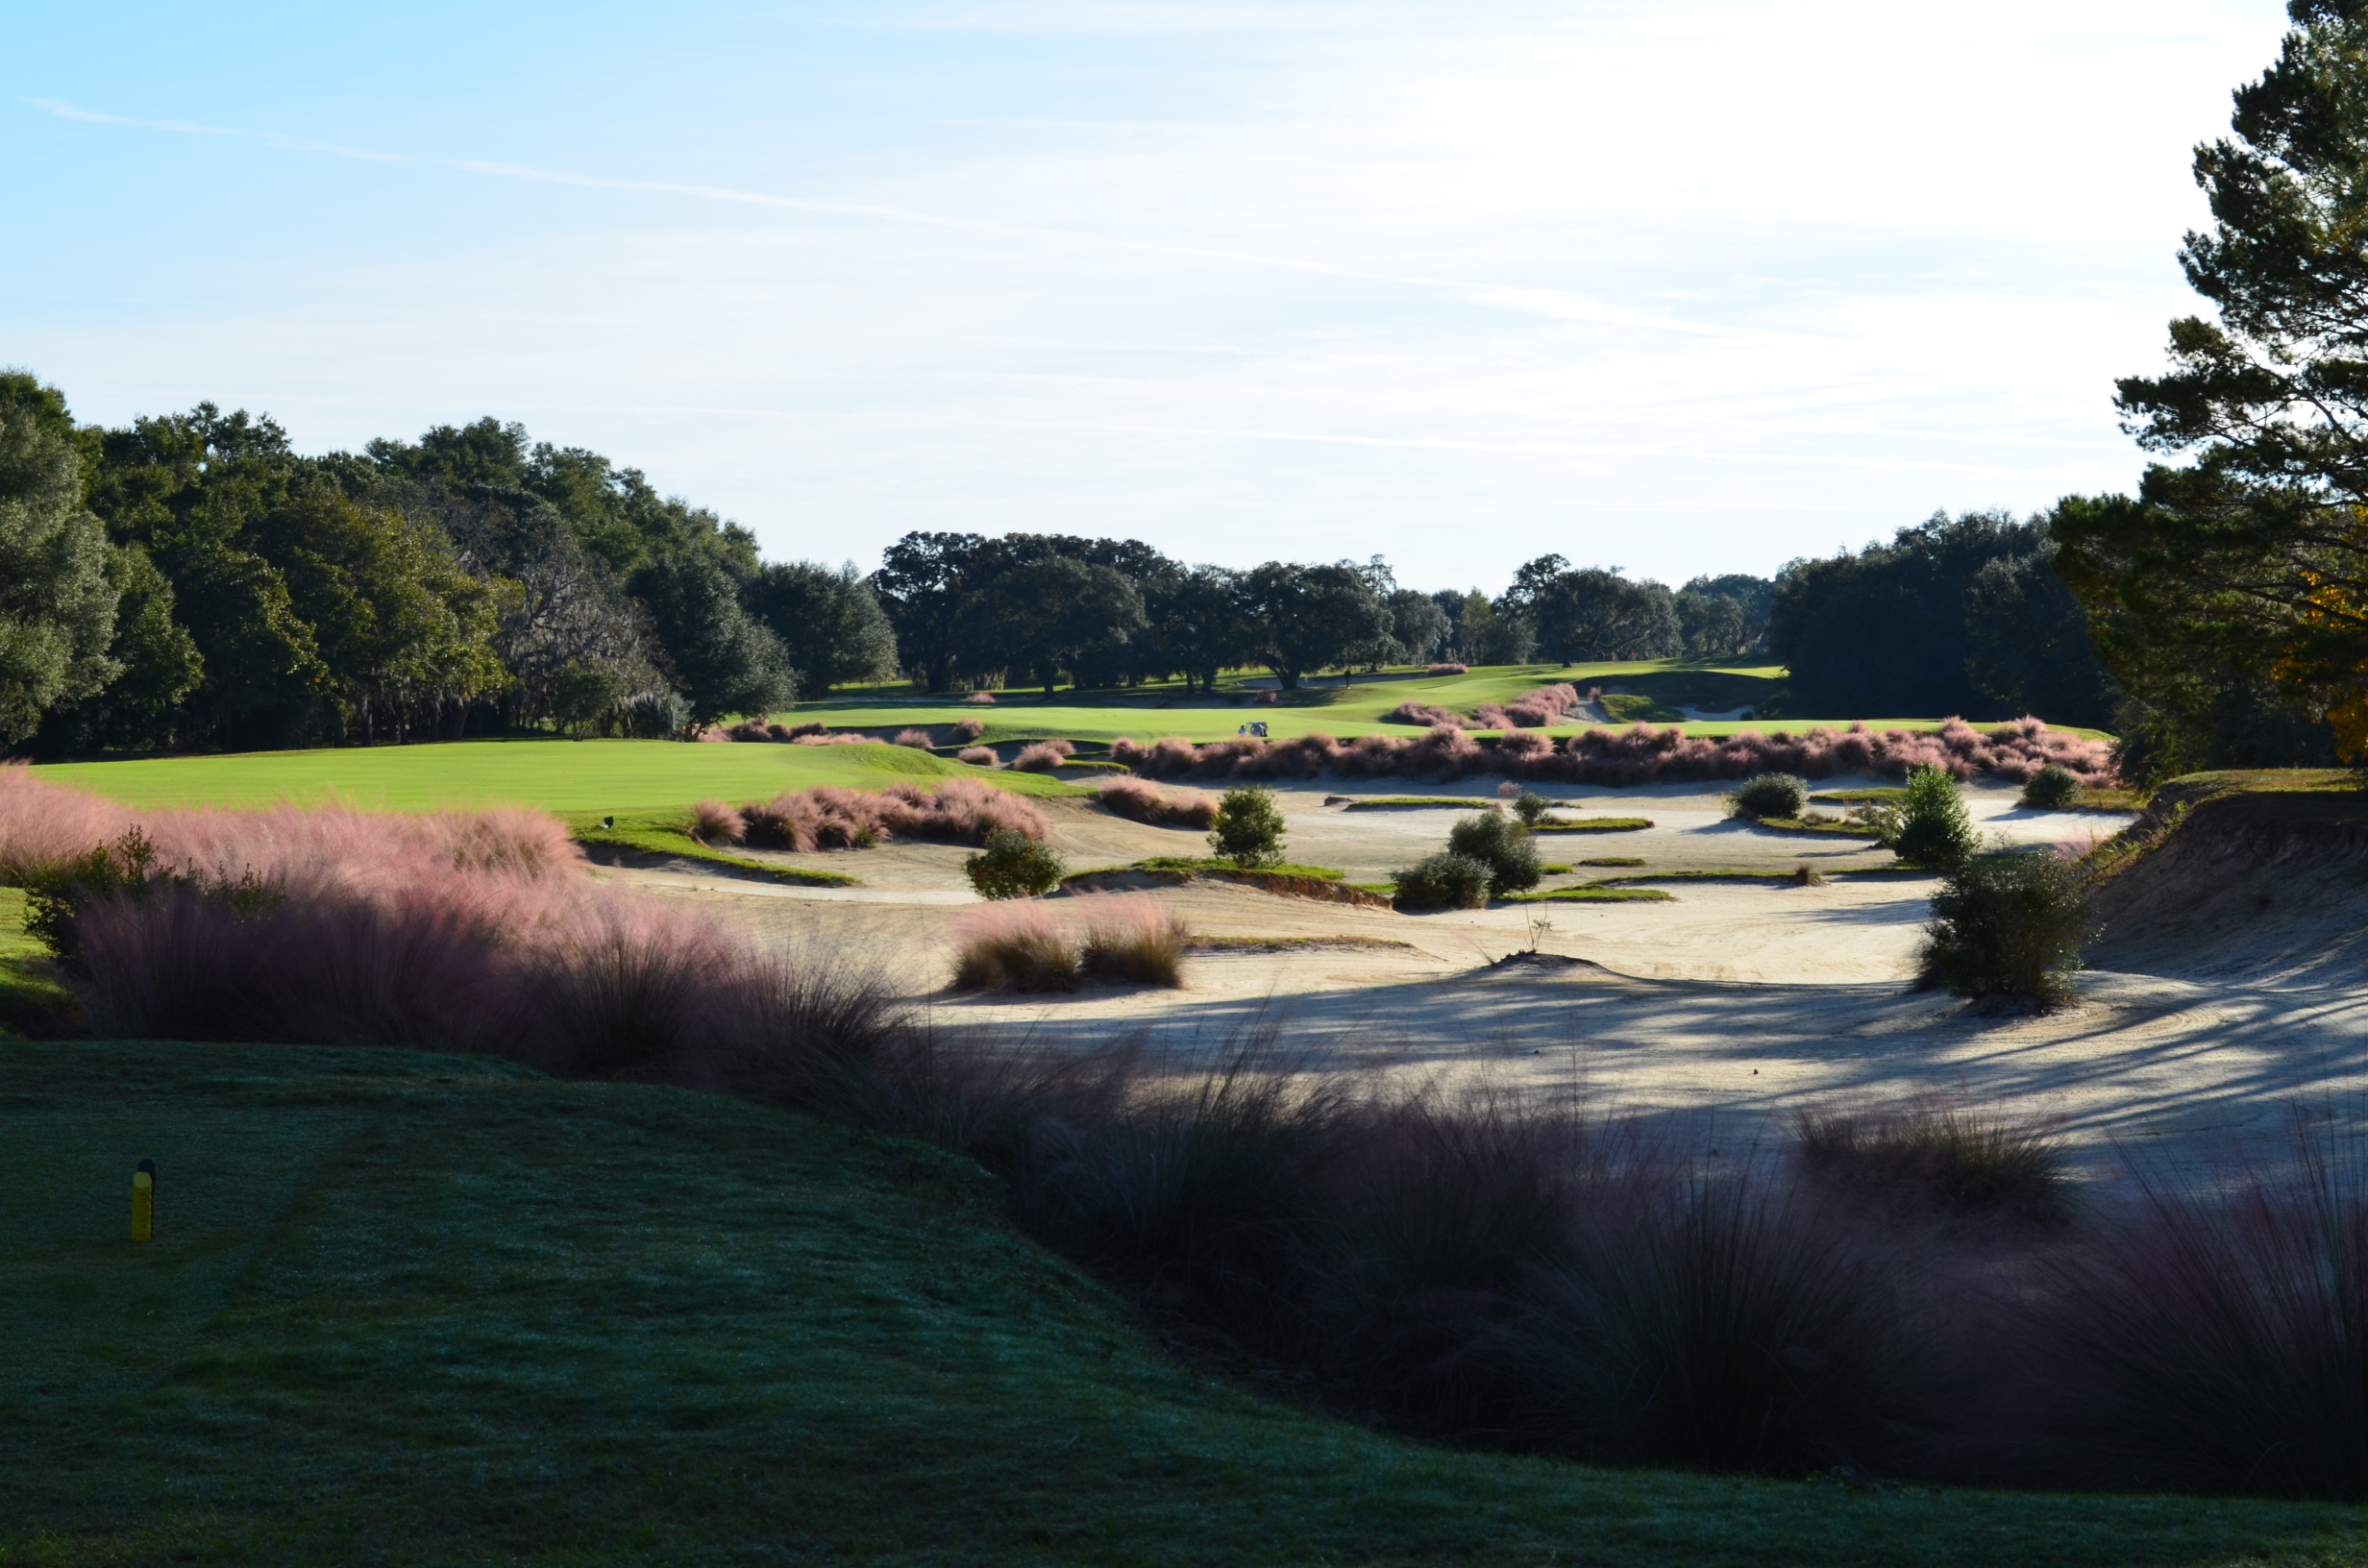 Overview of golf course named World Woods Golf Club - Pine Barrens